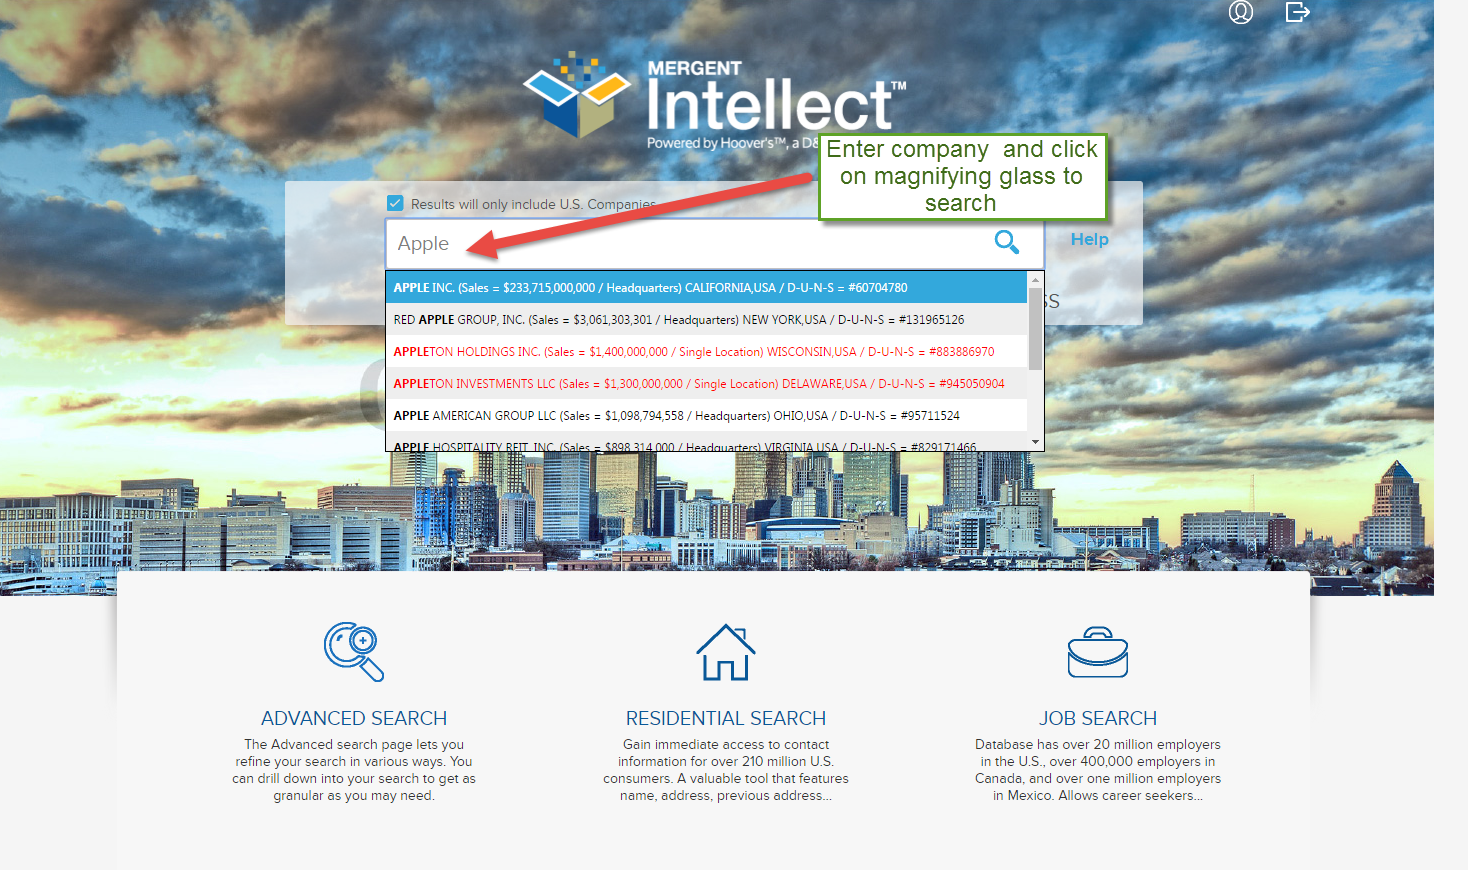 Mergent Intellect search page